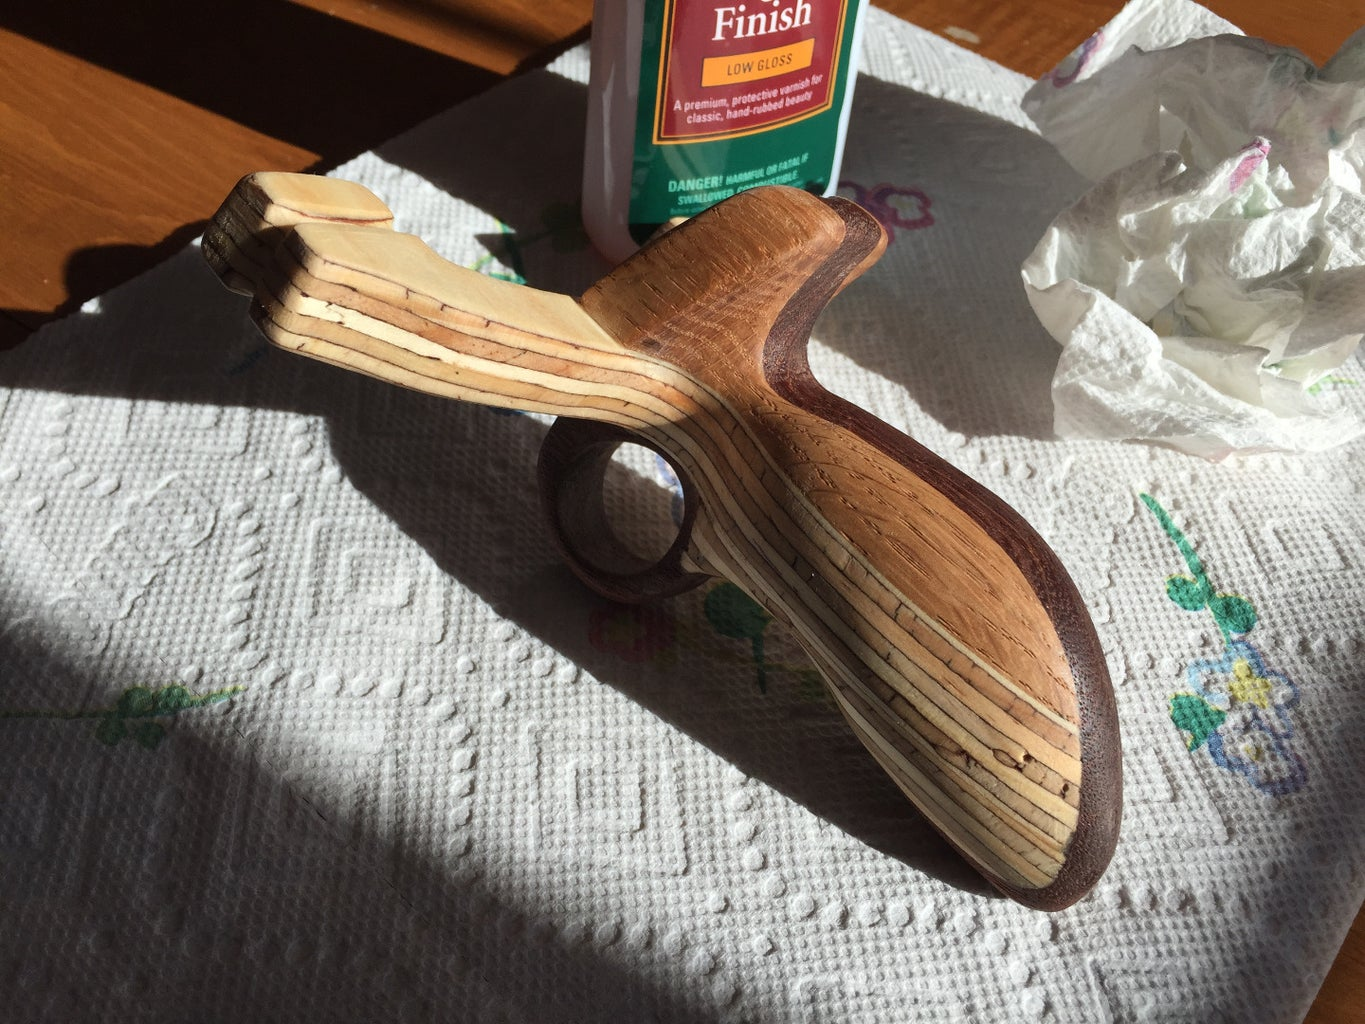 Oiling the Wood (optional)